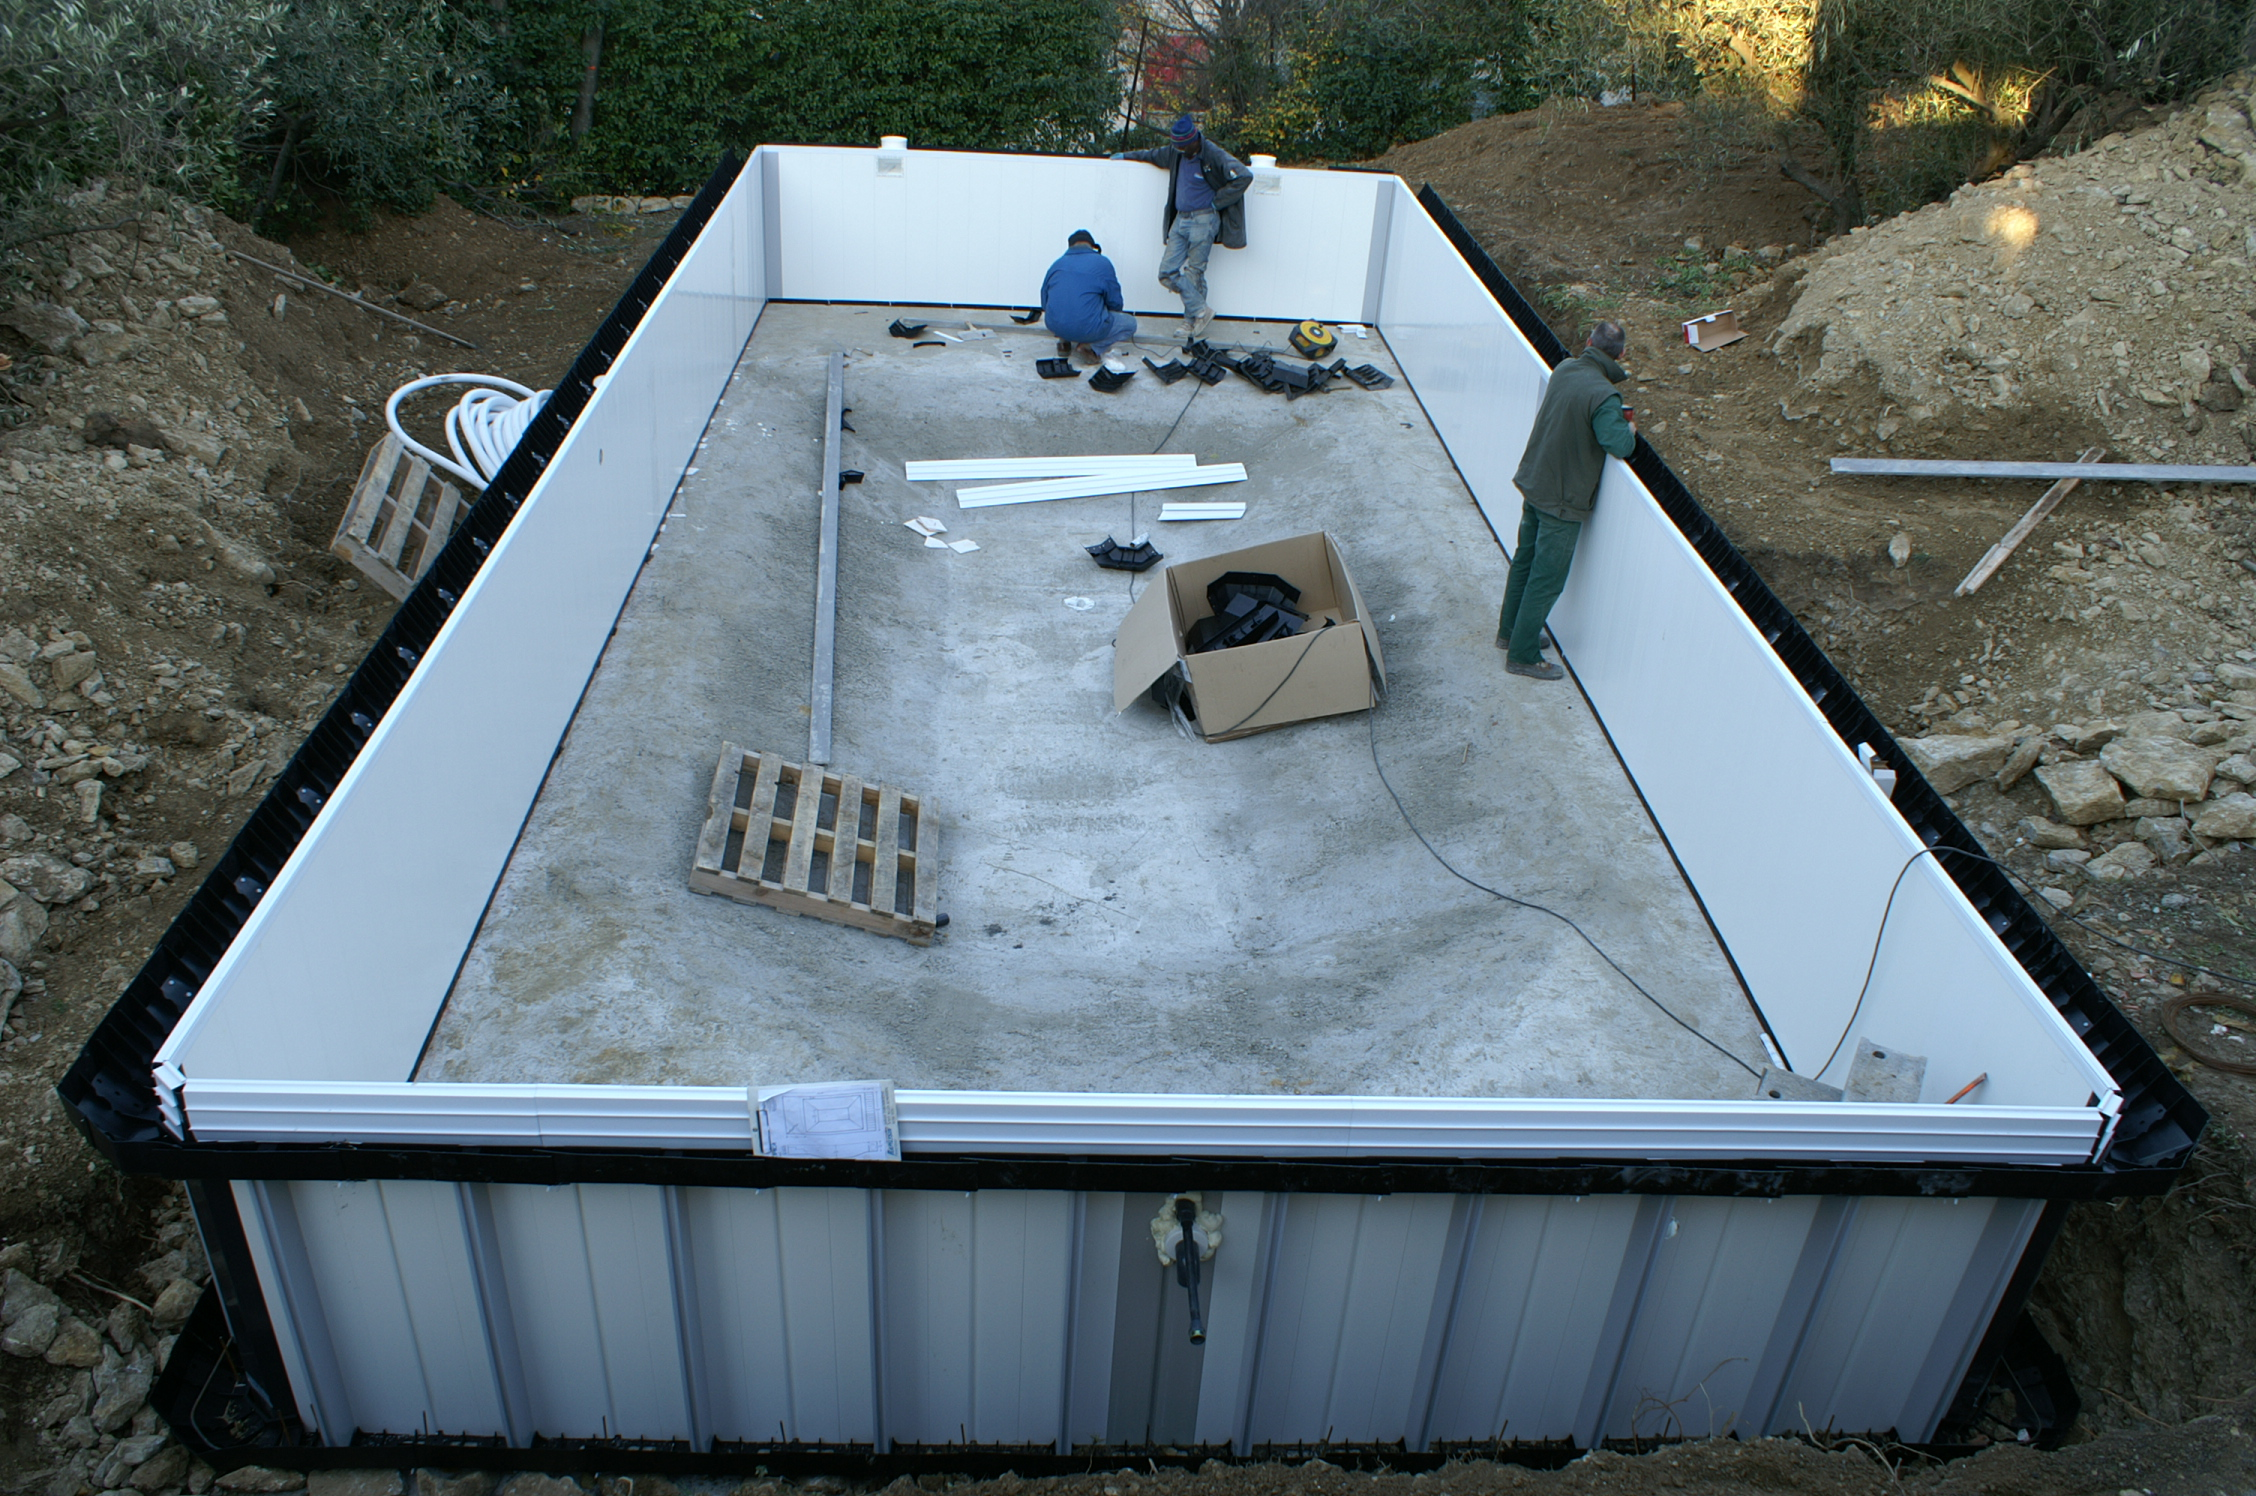 Construction piscines nimes gepad piscines et spa 30000 for Projet piscine